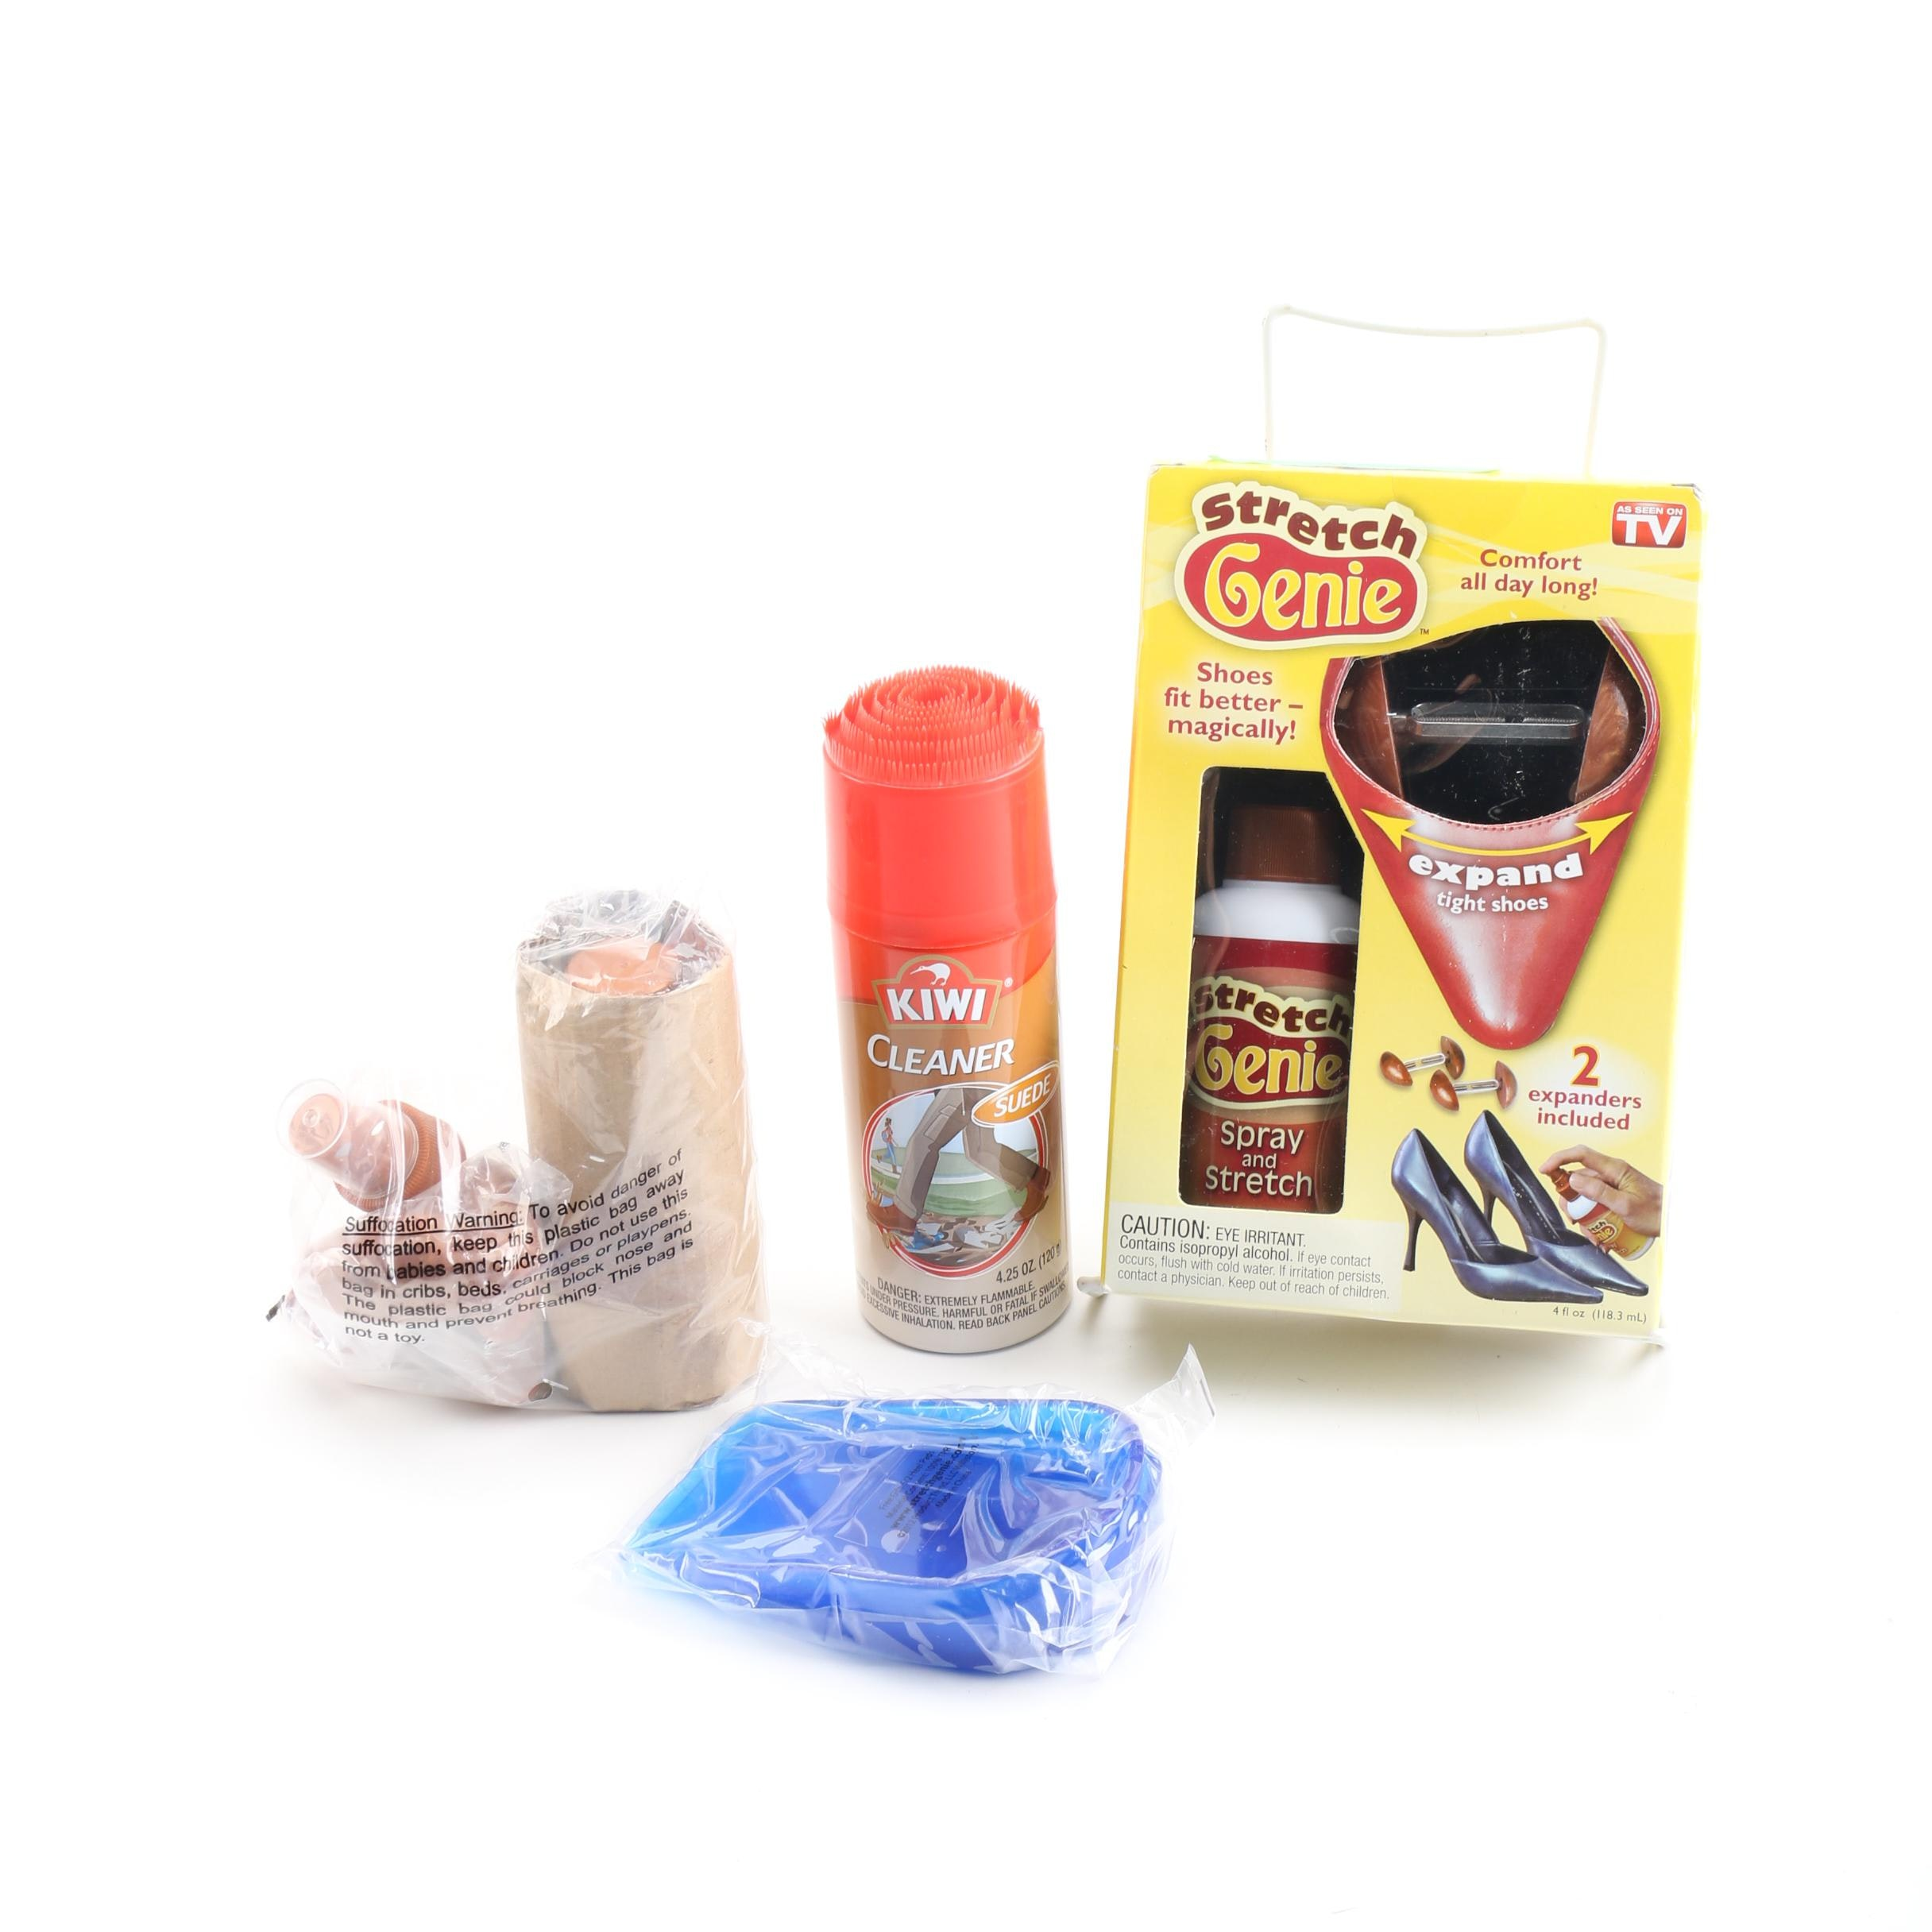 Stretch Genie Shoe Expanders With Accessories and Kiwi Brand Suede Cleaner